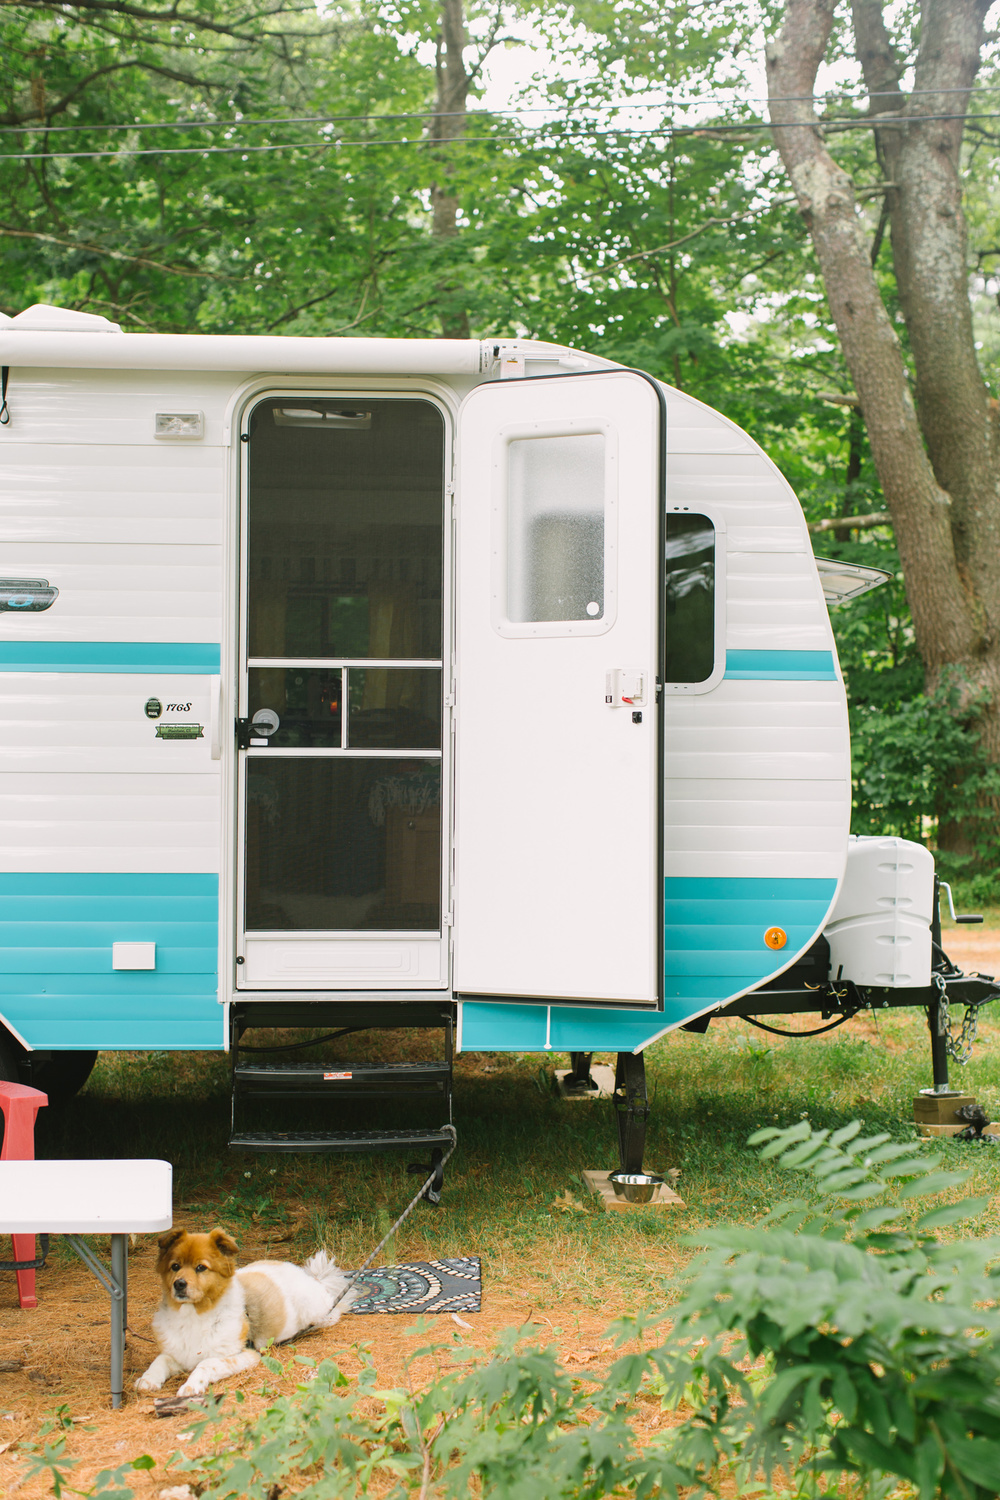 CindyGiovagnoli_CamperRenovation_VintageCamper_Trailer_Reno-001.jpg